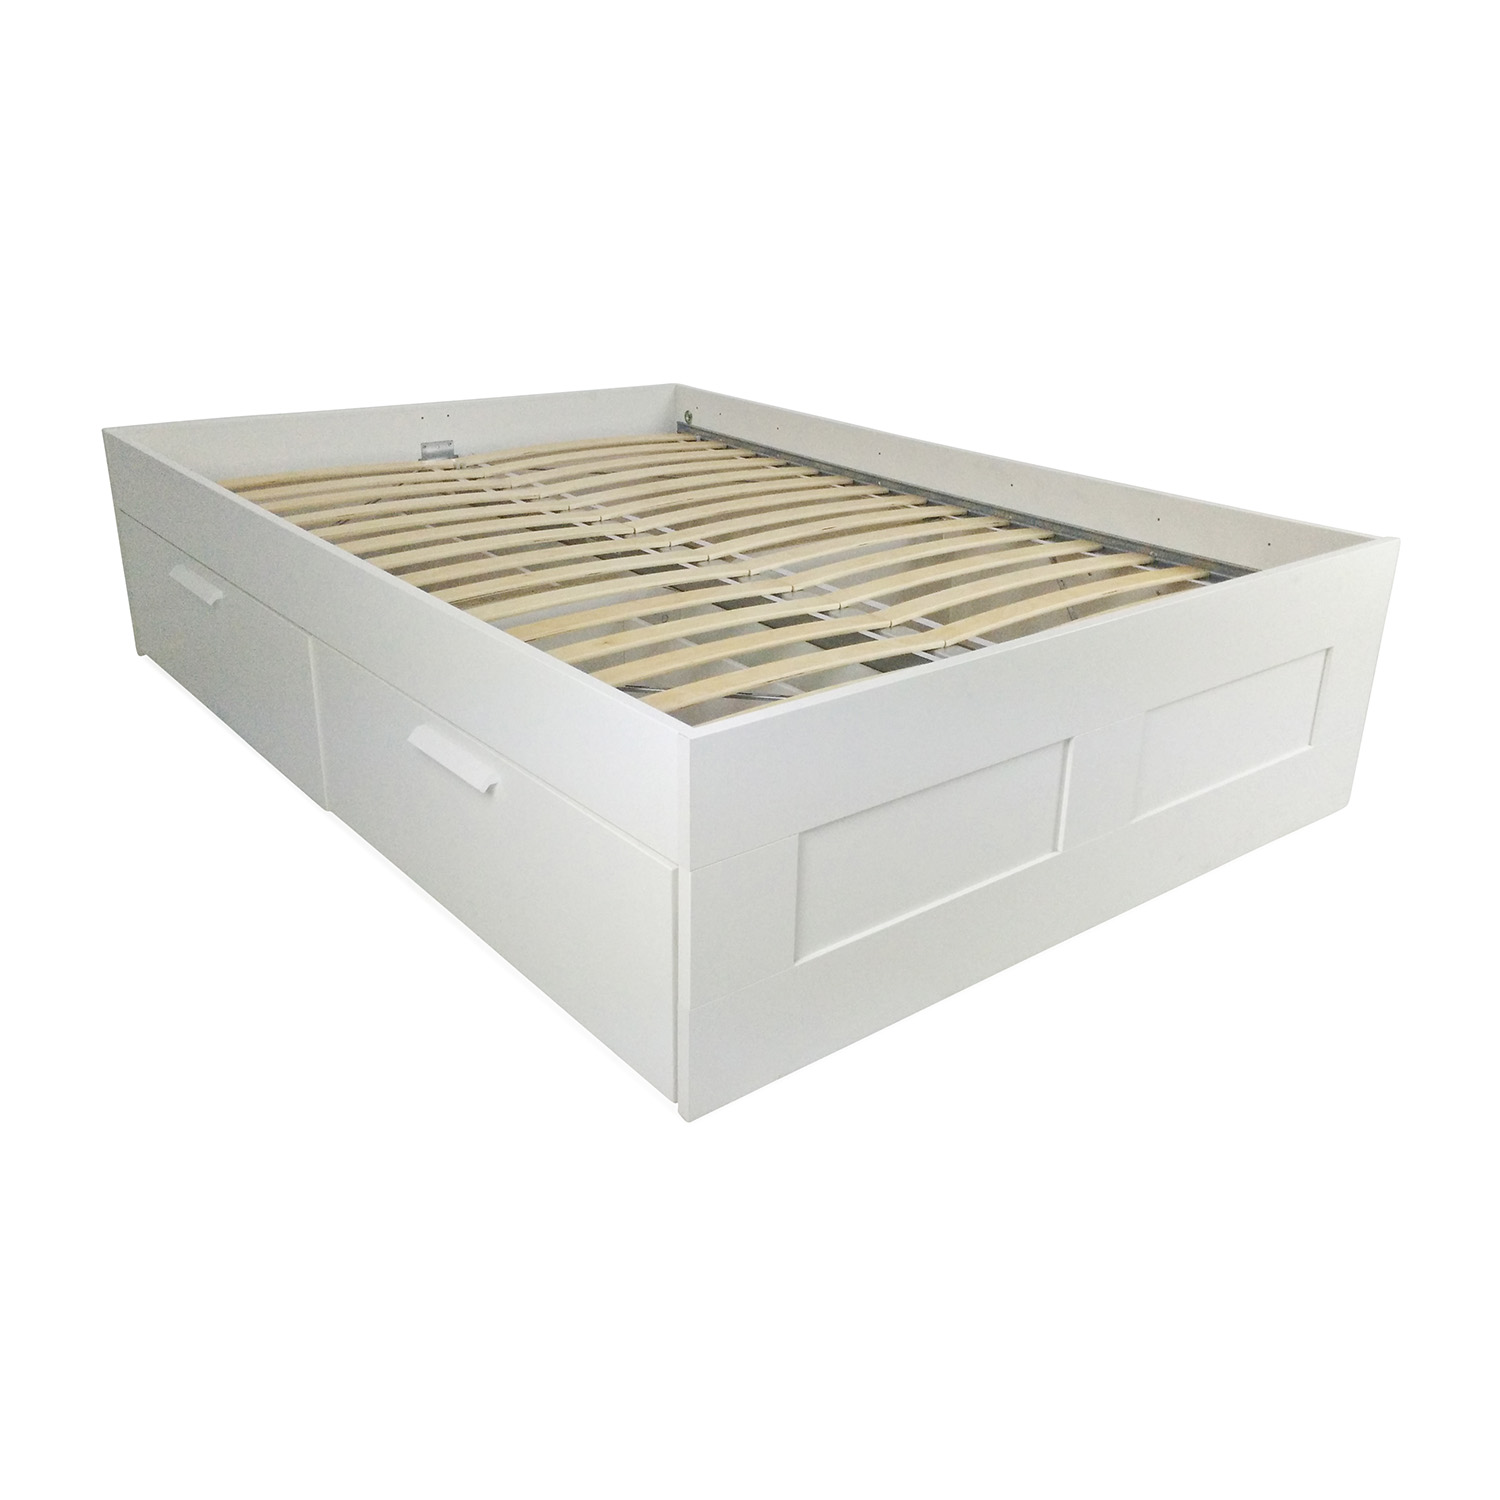 buy ikea ikea brimnes full bed frame online